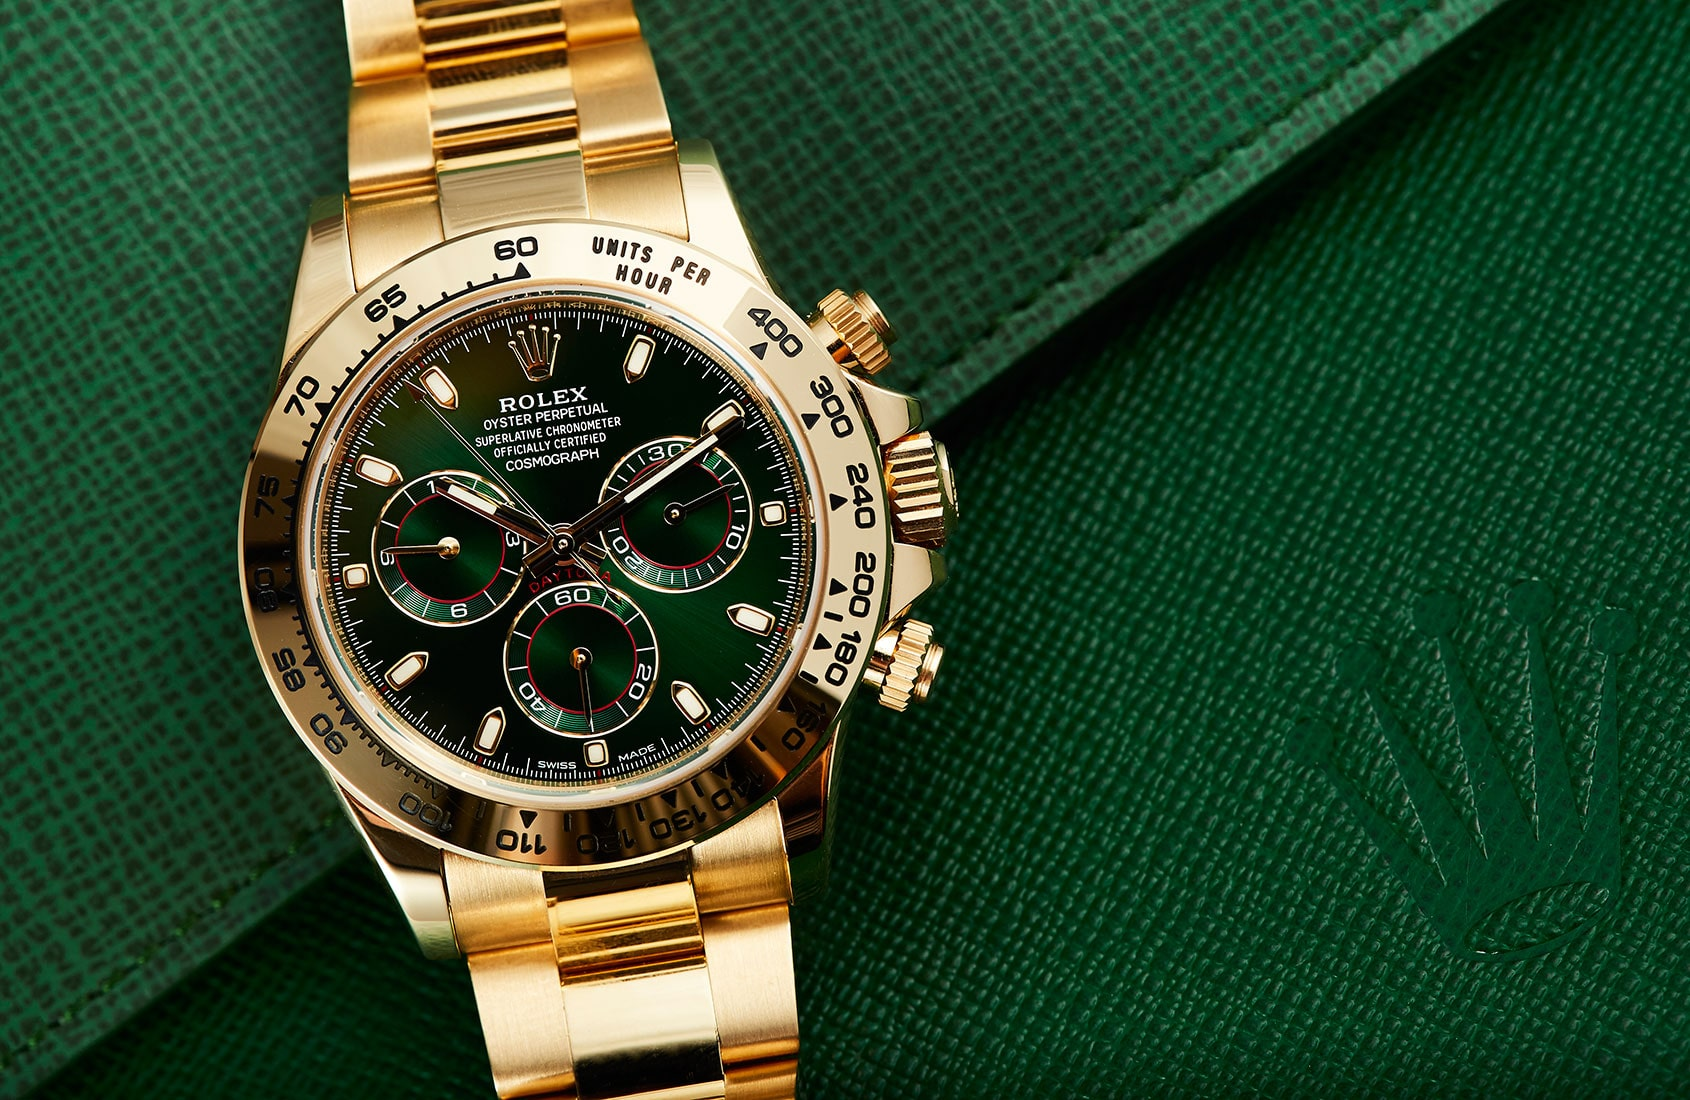 Green Face Rolex Watches